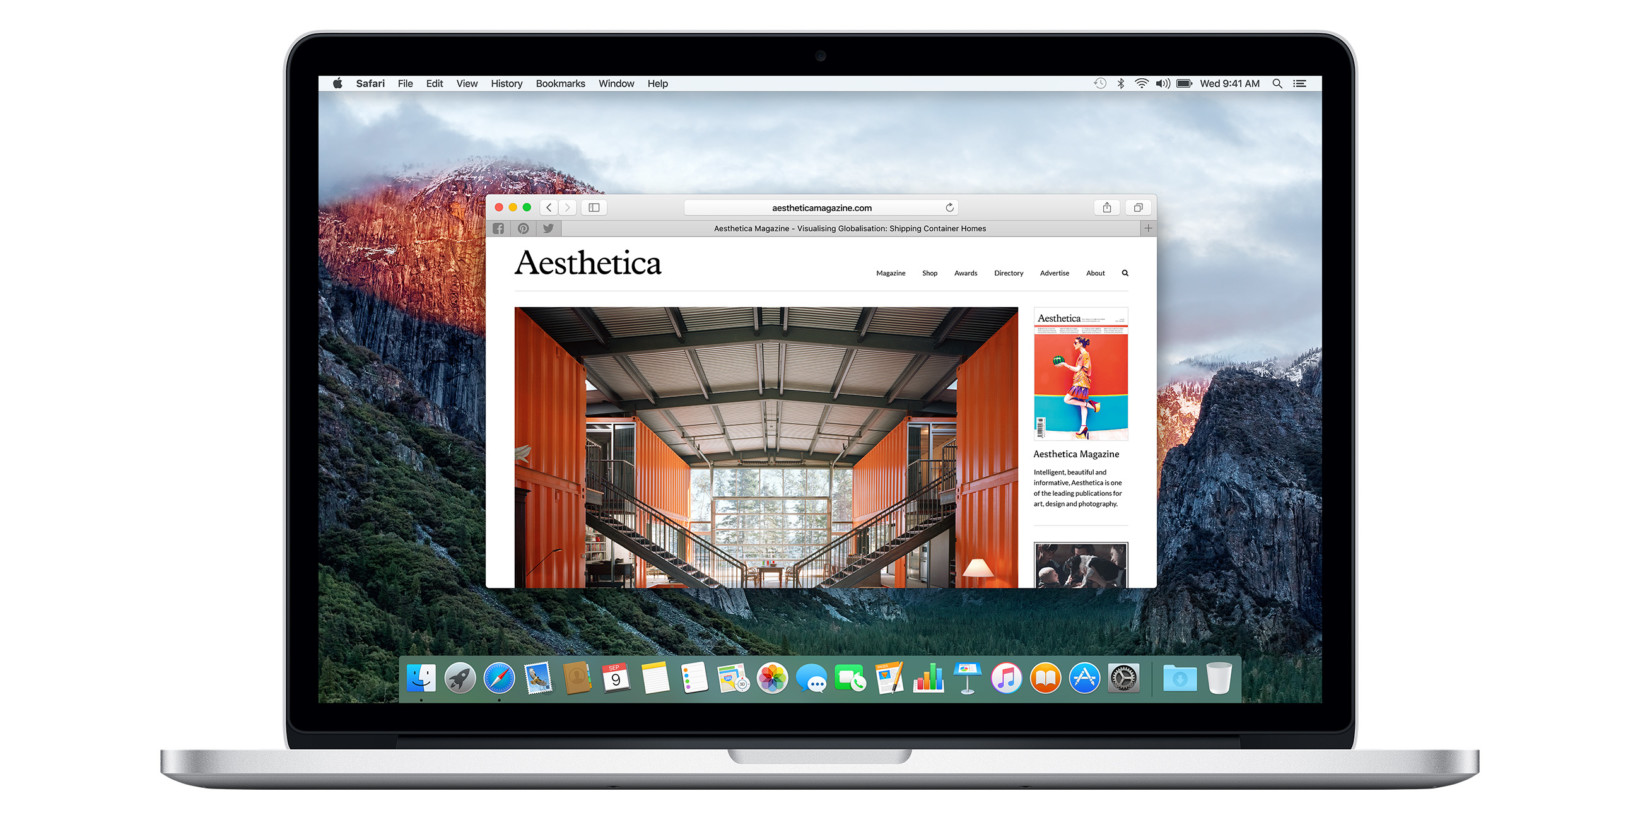 Apple is finally ditching Flash in Safari on MacOS Sierra